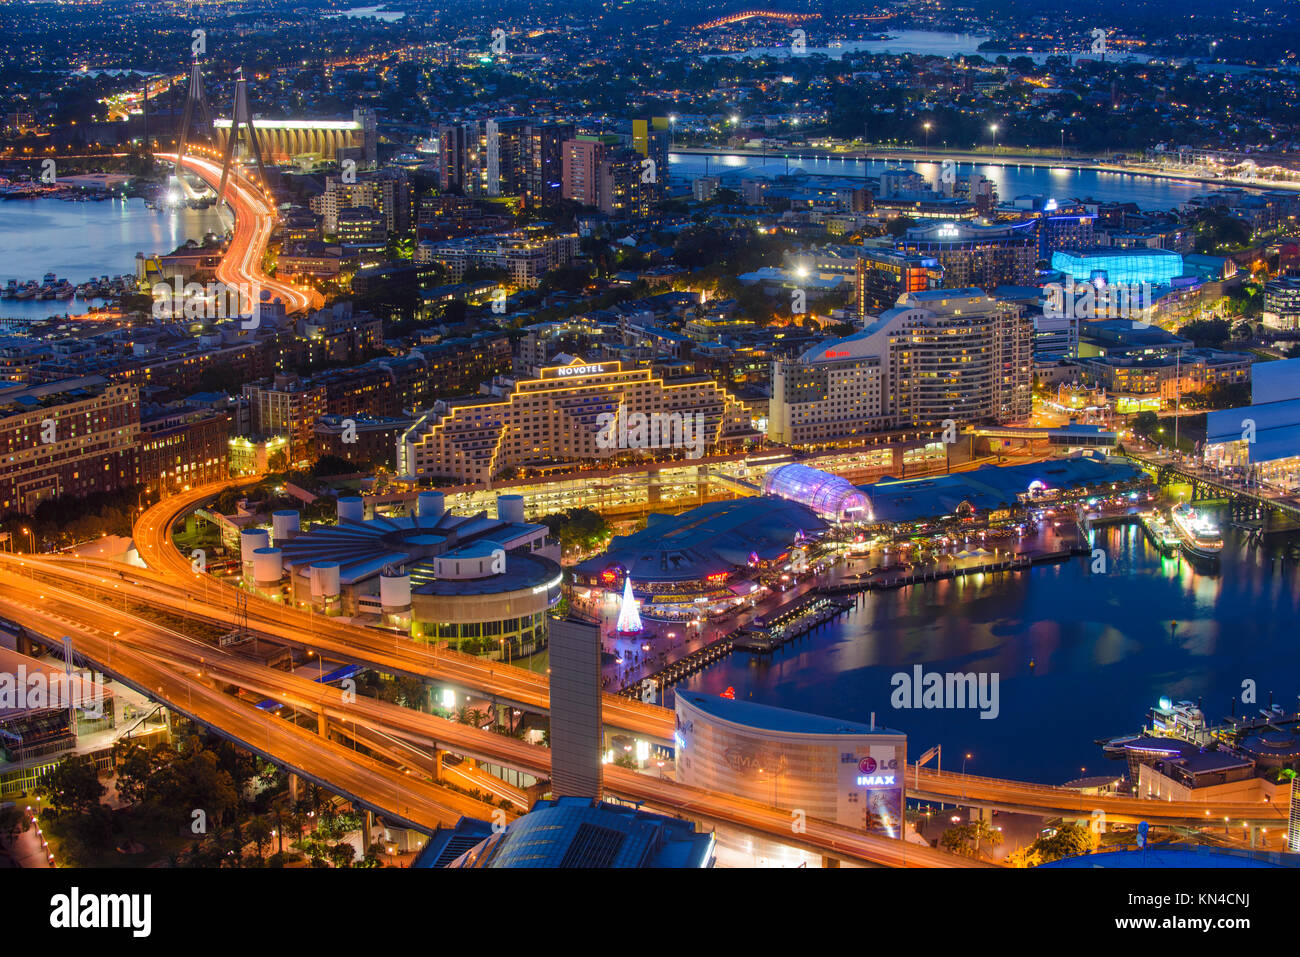 Darling Harbour at Night from Above, Sydney, New South Wales (NSW), Australia - Stock Image